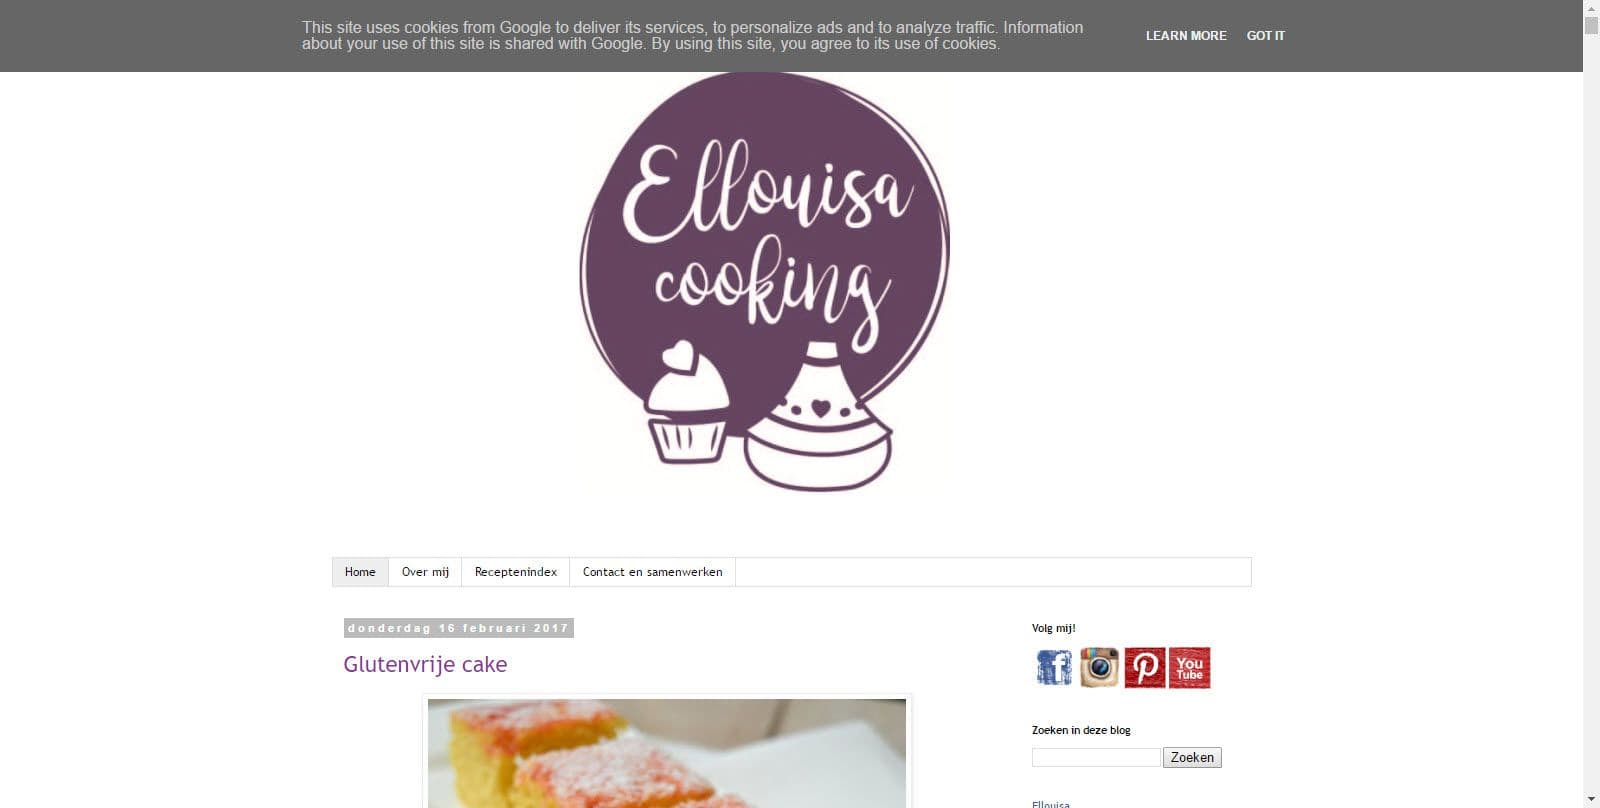 Ellouisa cooking door Ellouisa Scholten